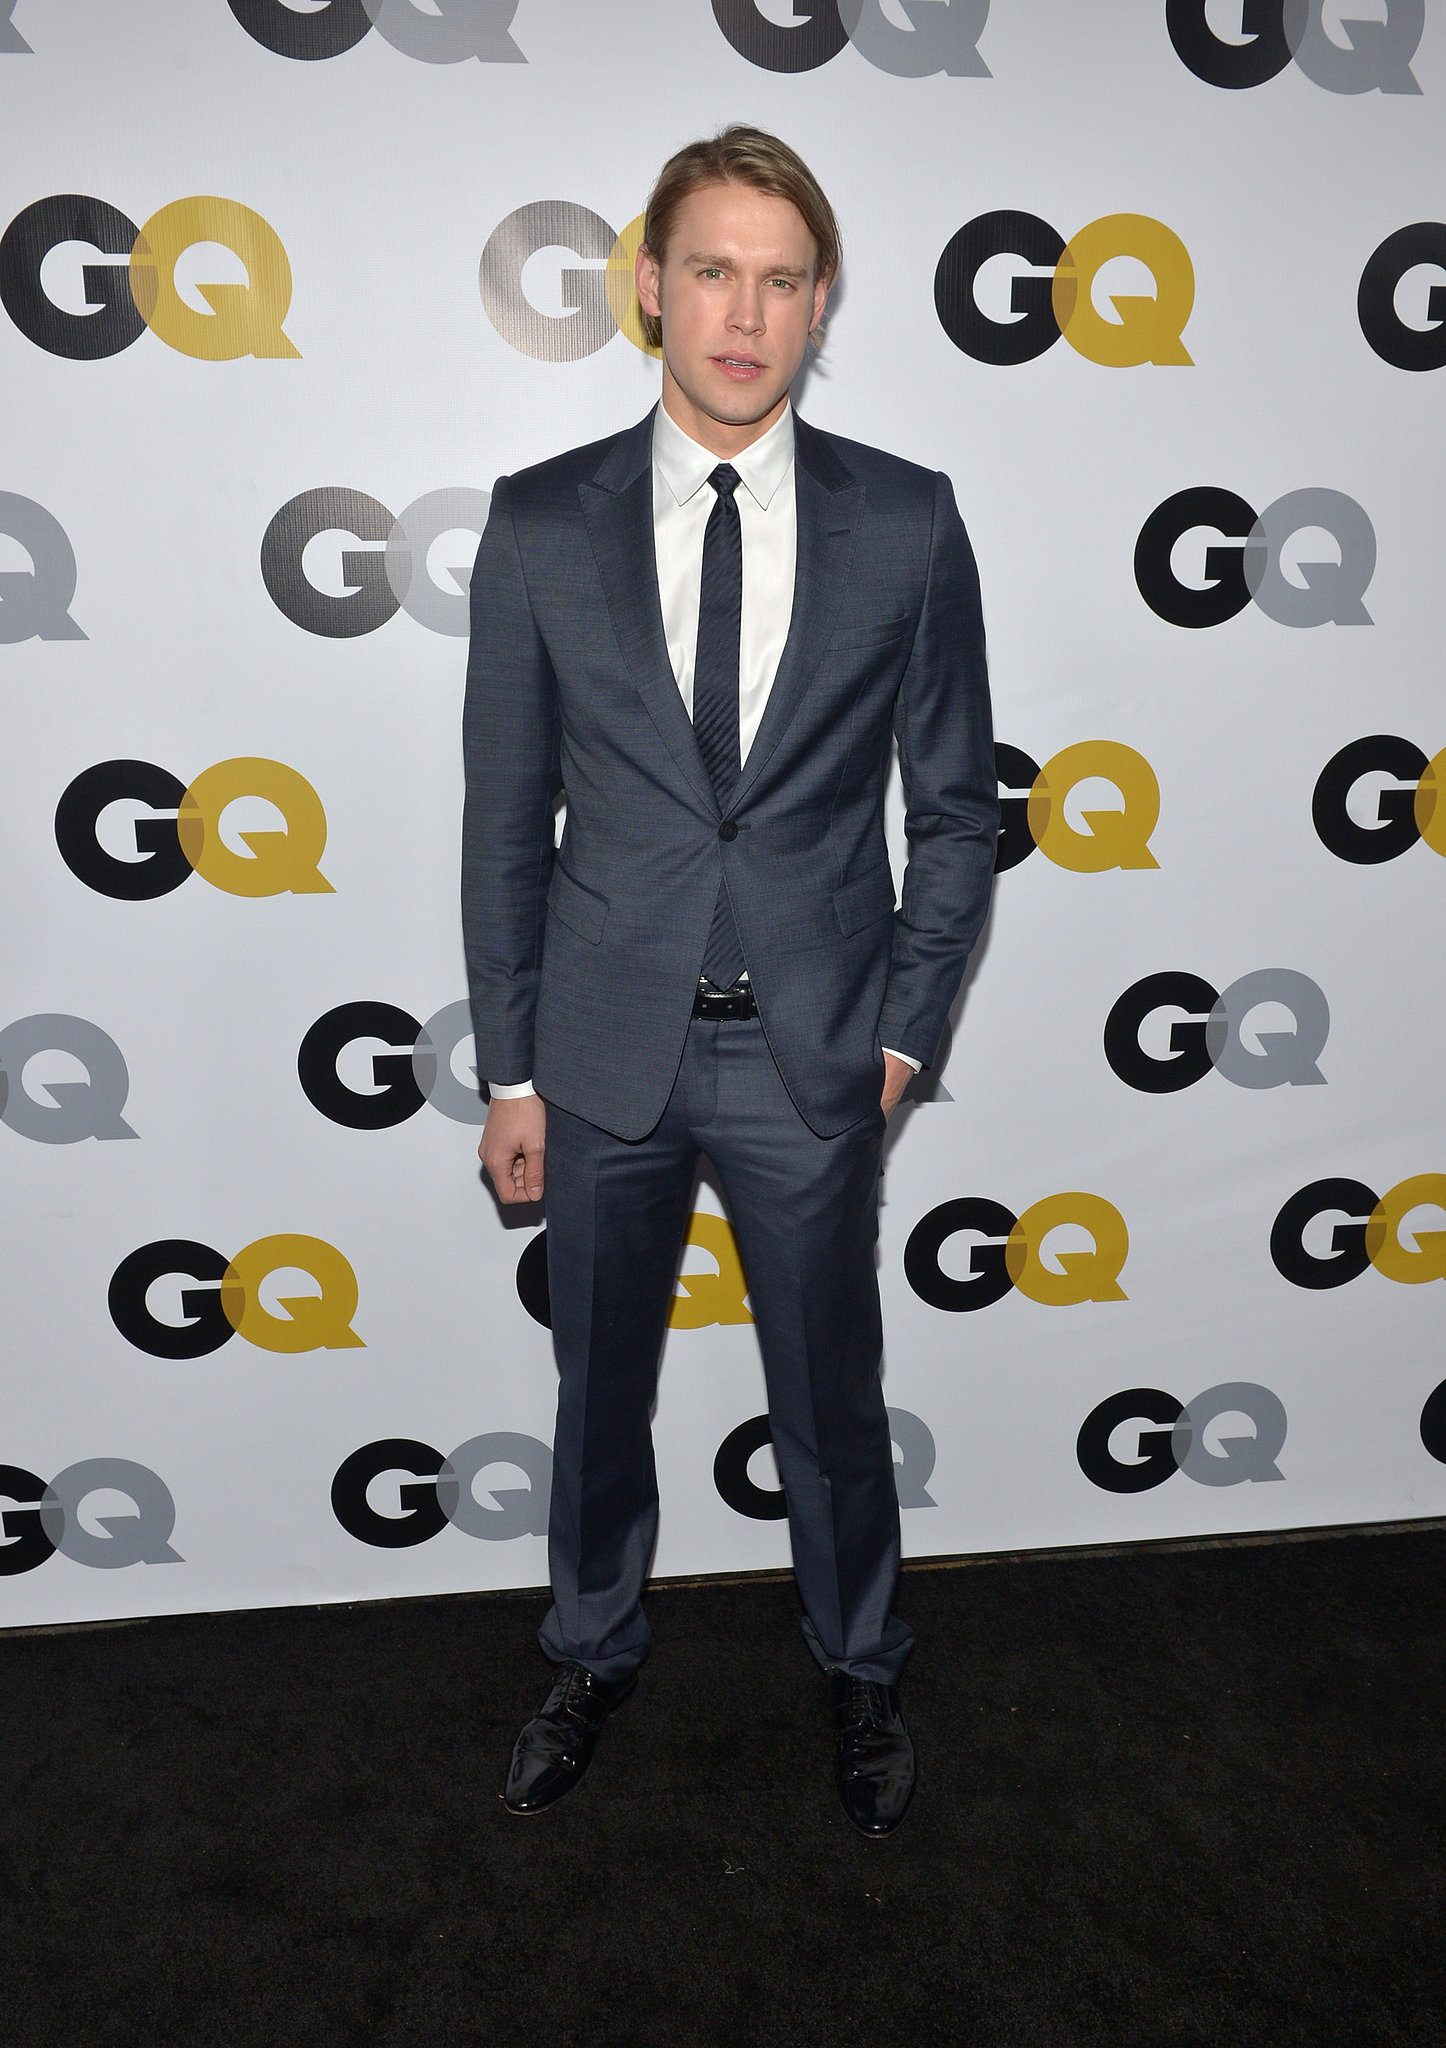 It's Raining Gentlemen at the GQ Party